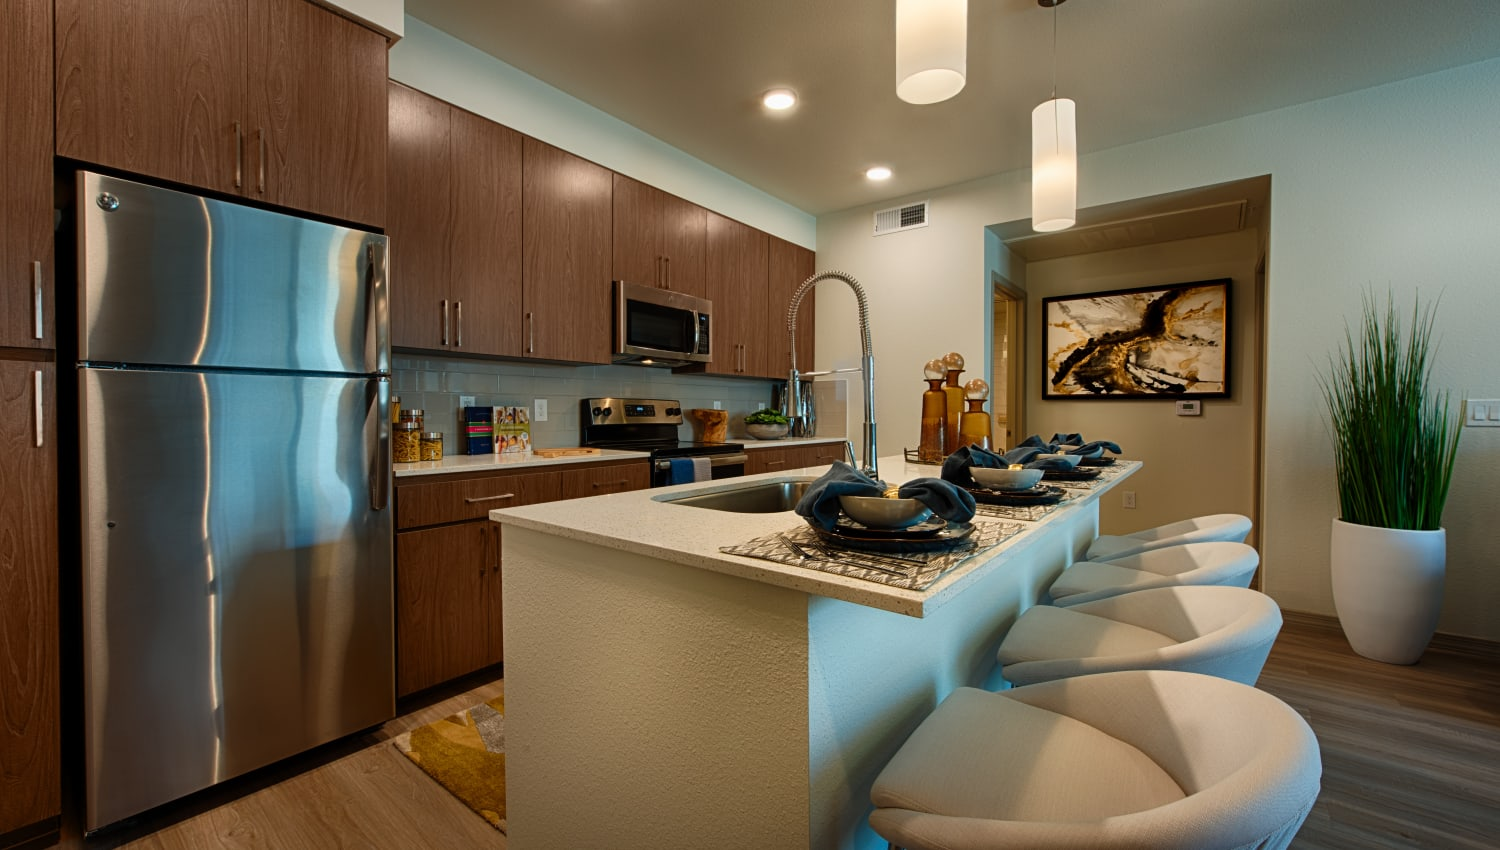 Kitchen with stainless steel appliances at Ocio Plaza Del Rio in Peoria, Arizona